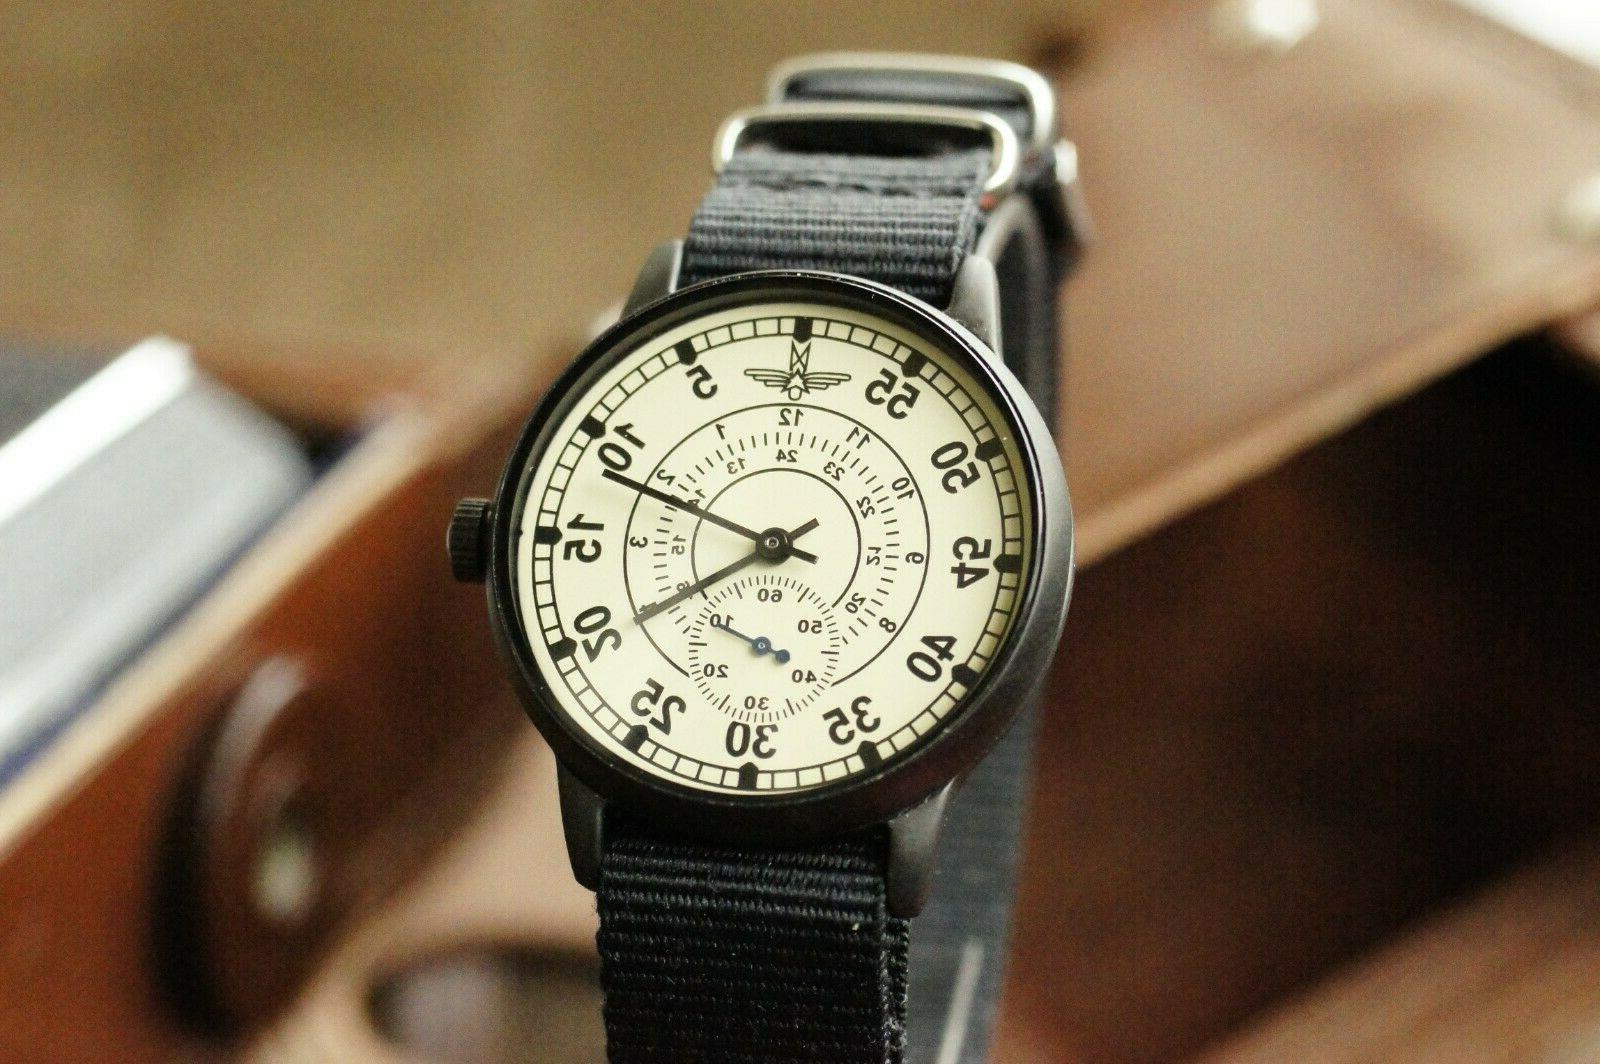 Watch Wings Pilot Mechanical Men's Vintage MILITARY